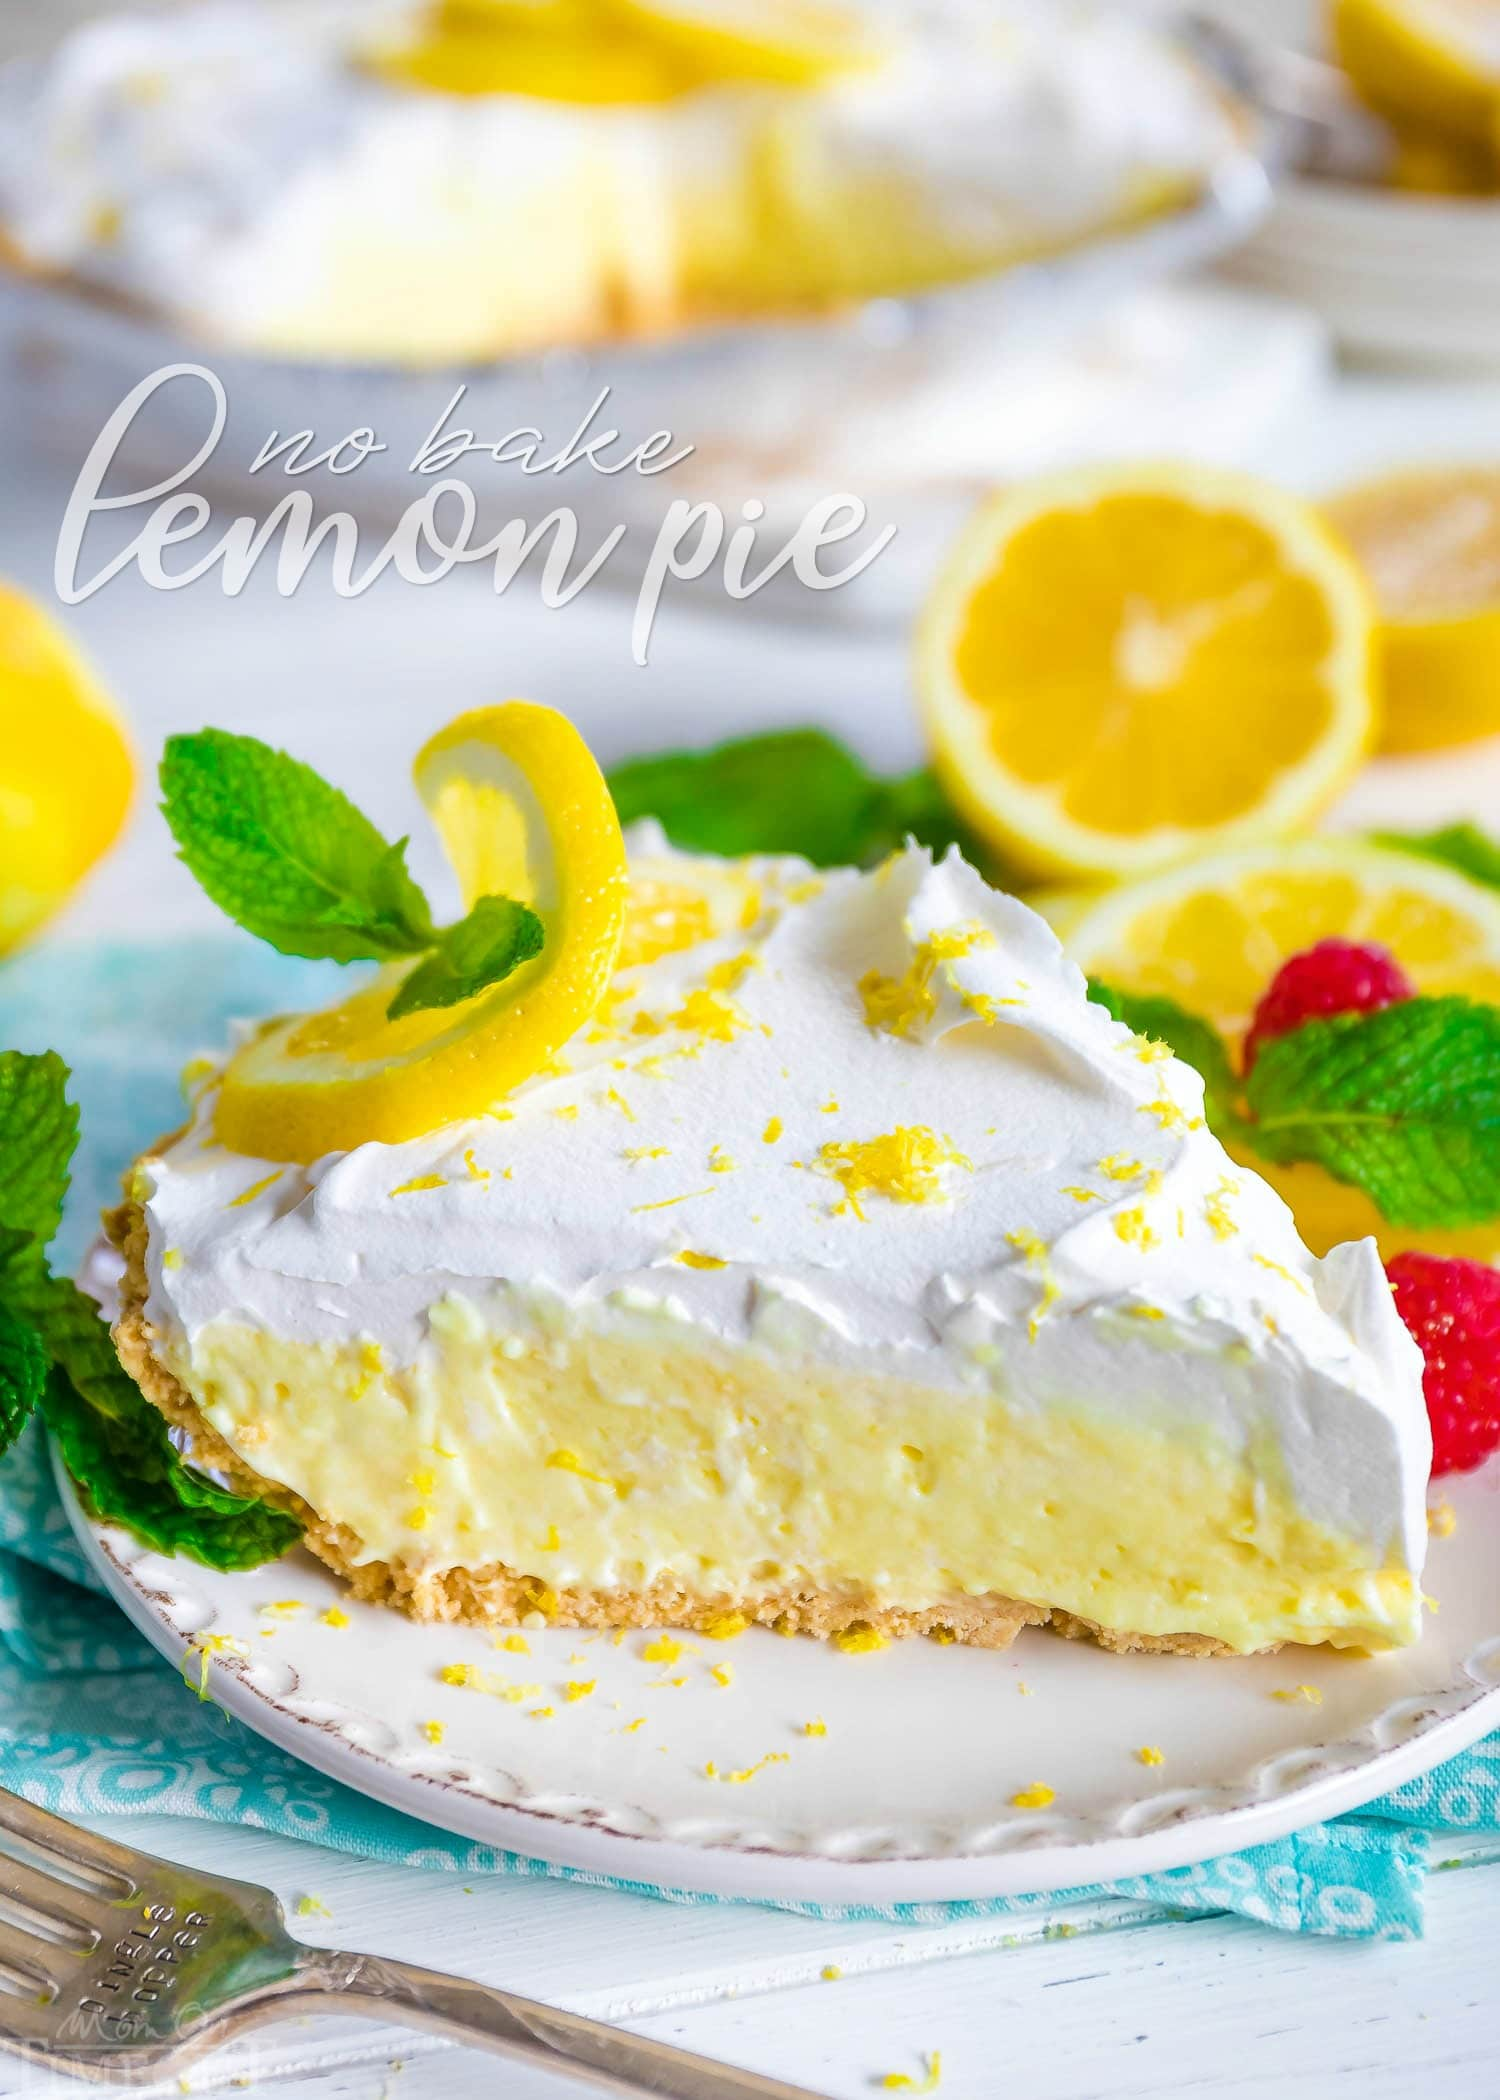 lemon-pie-recipe-no-bake-slice-plated-garnished